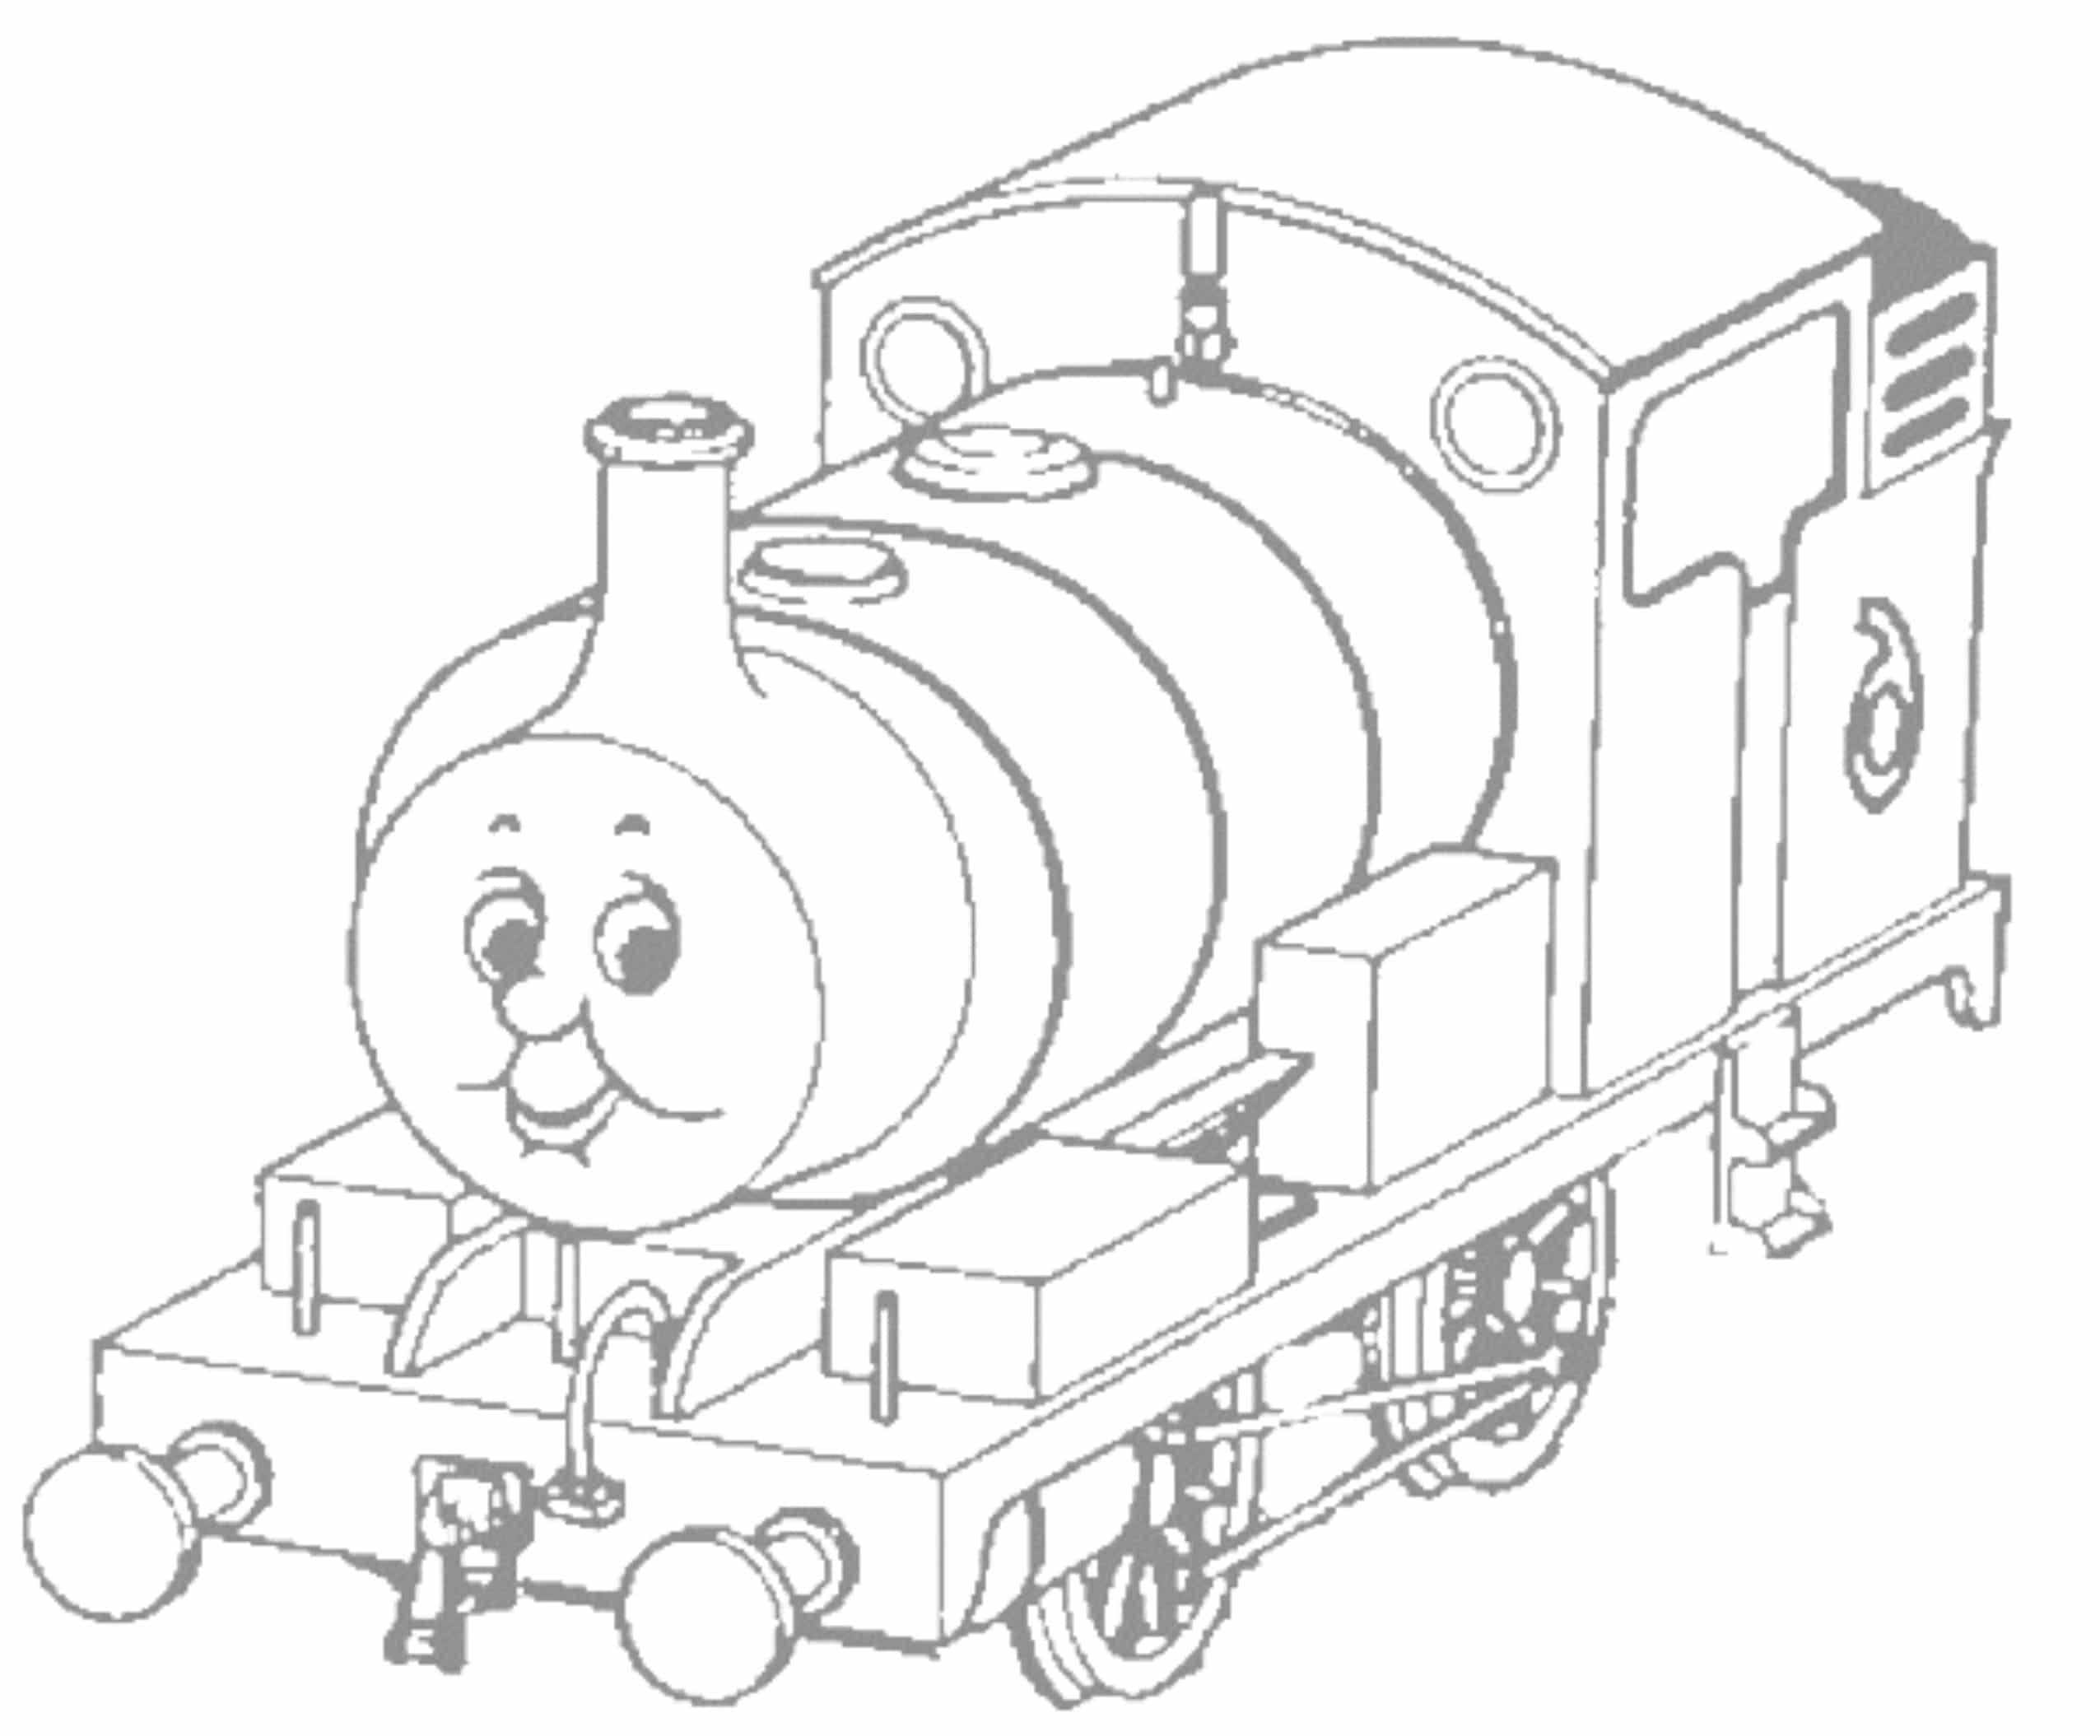 coloring pages trains steam train coloring page for kids netart pages trains coloring